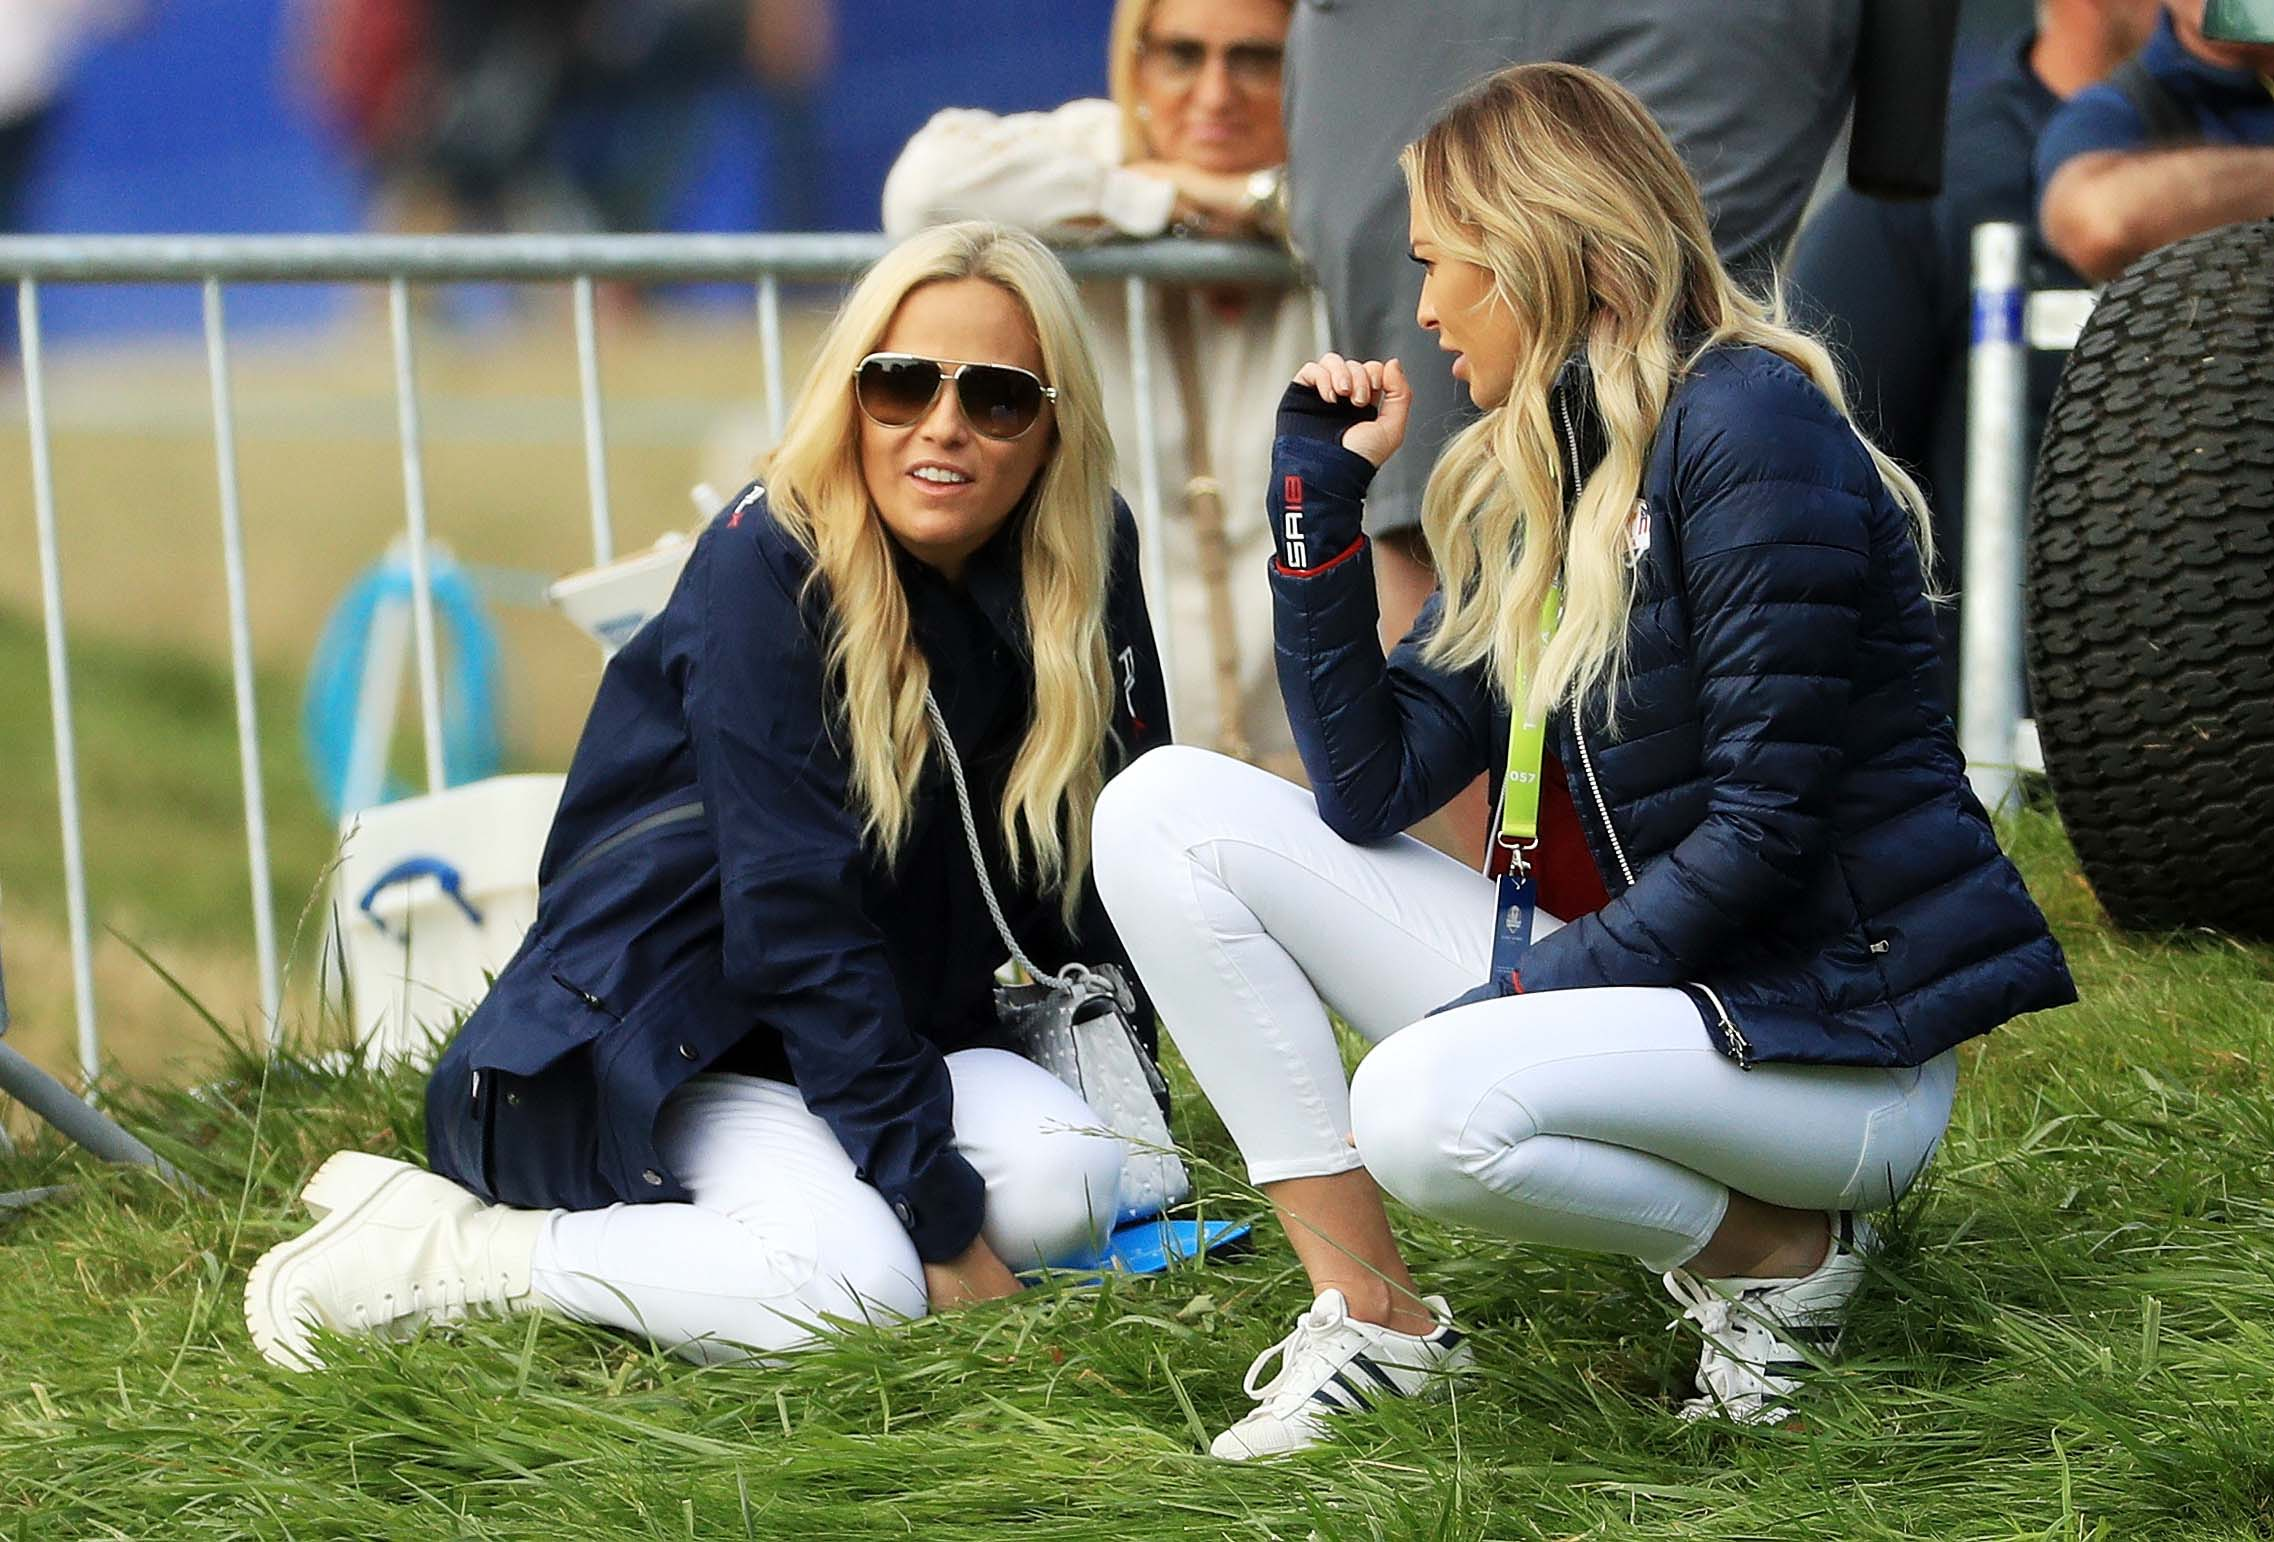 Amy Mickelson and Paulina Gretzky